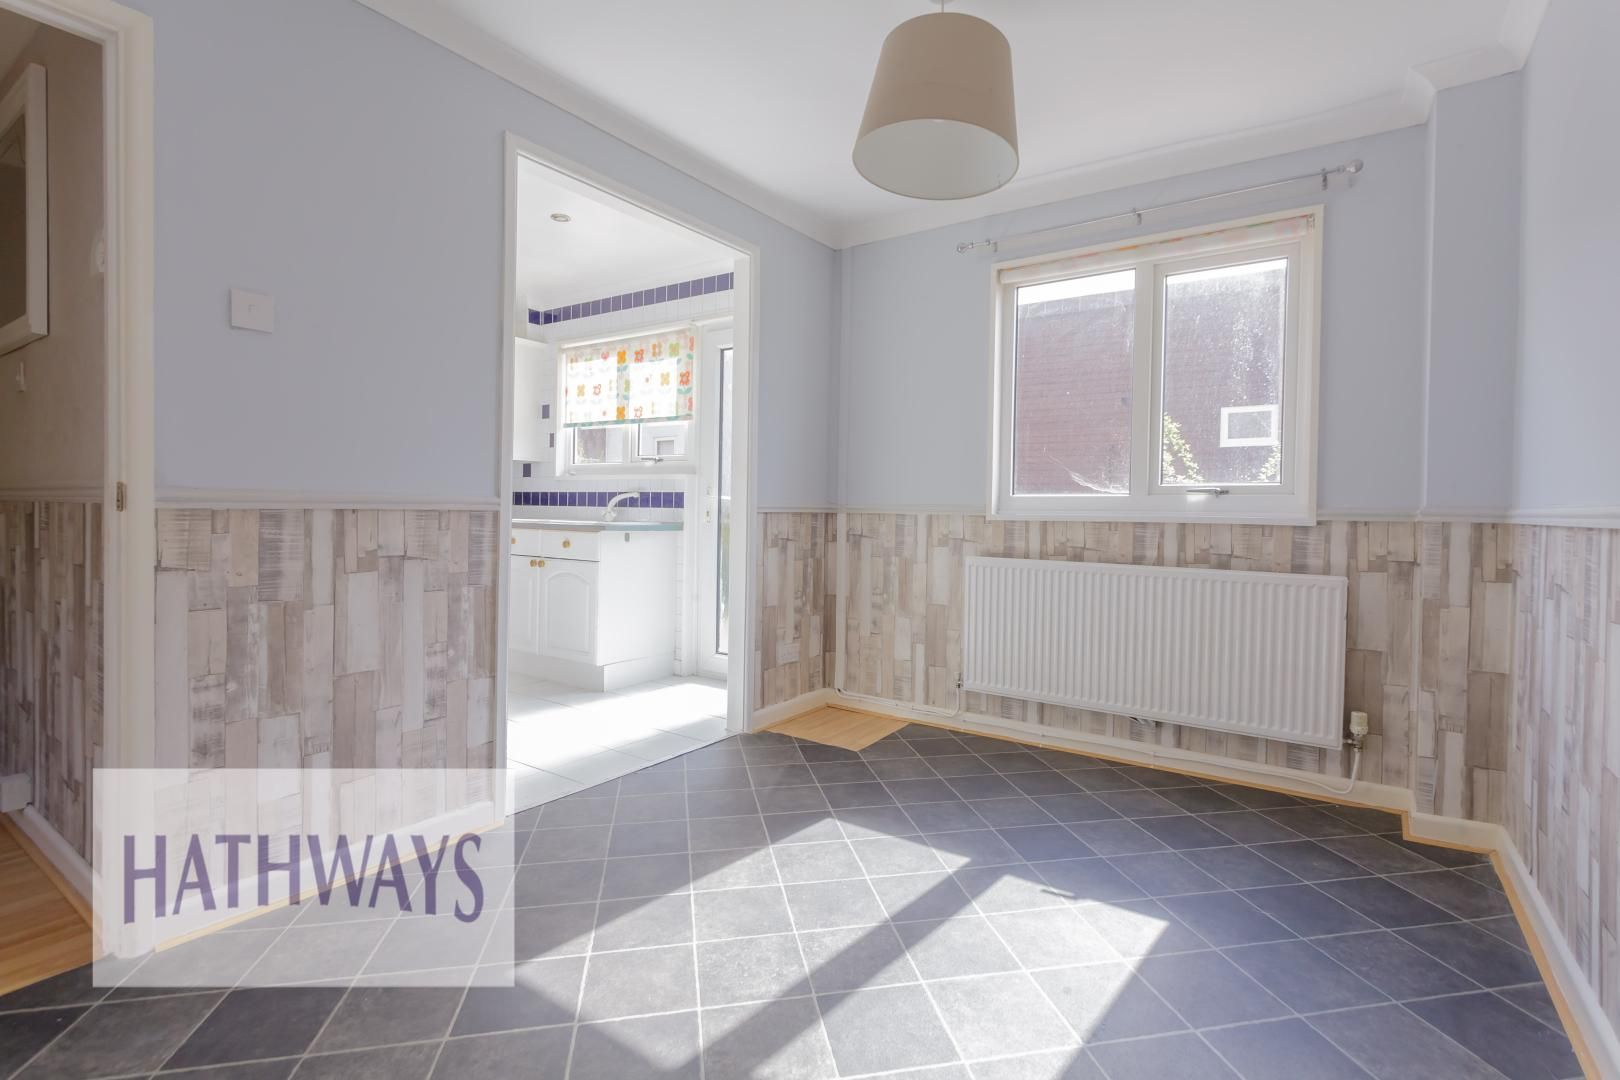 3 bed house for sale in Oaksford 8